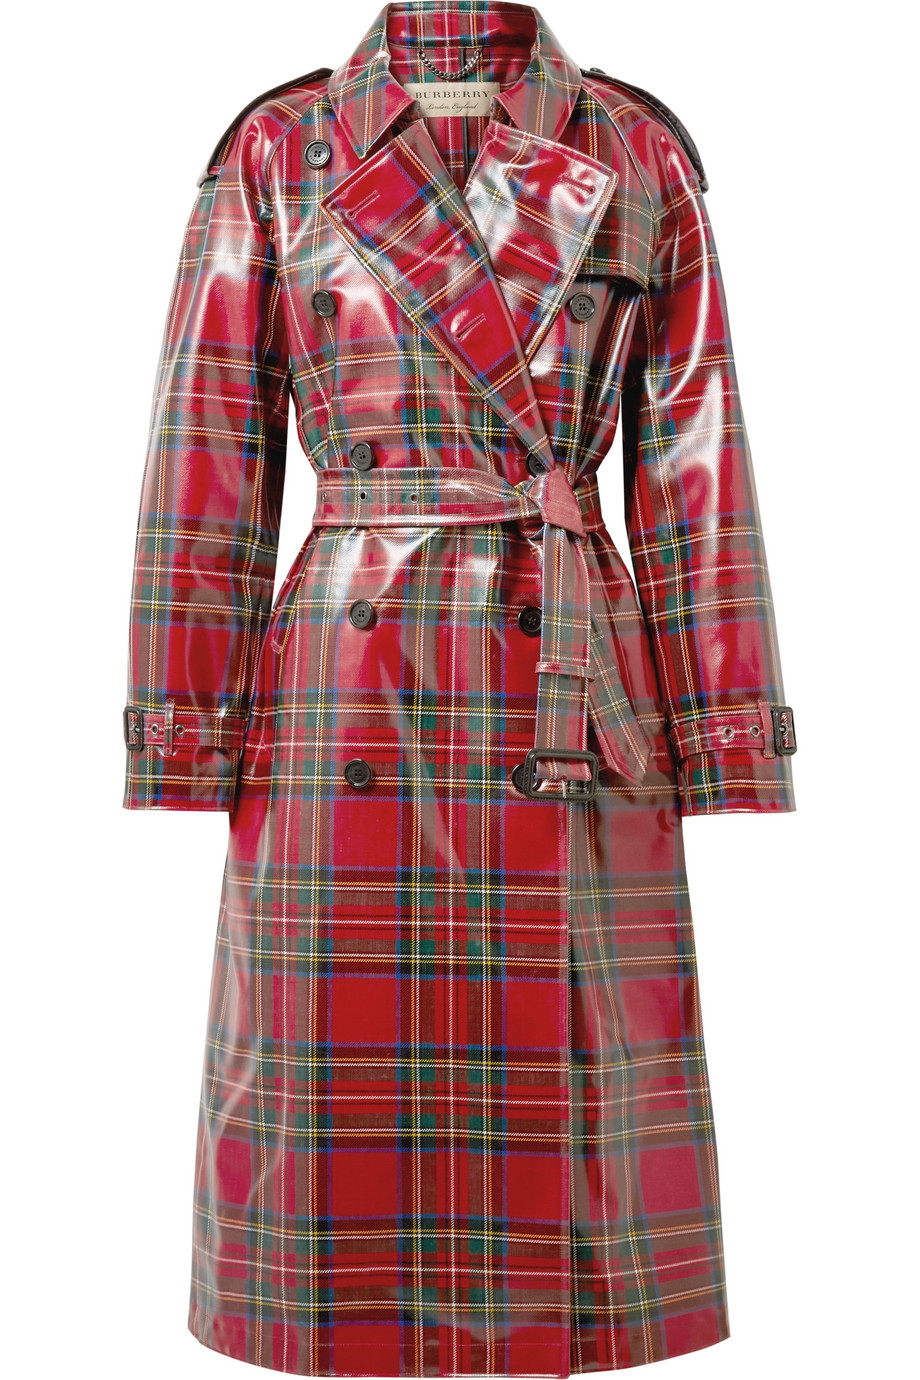 BURBERRY laminated tartan trench coat